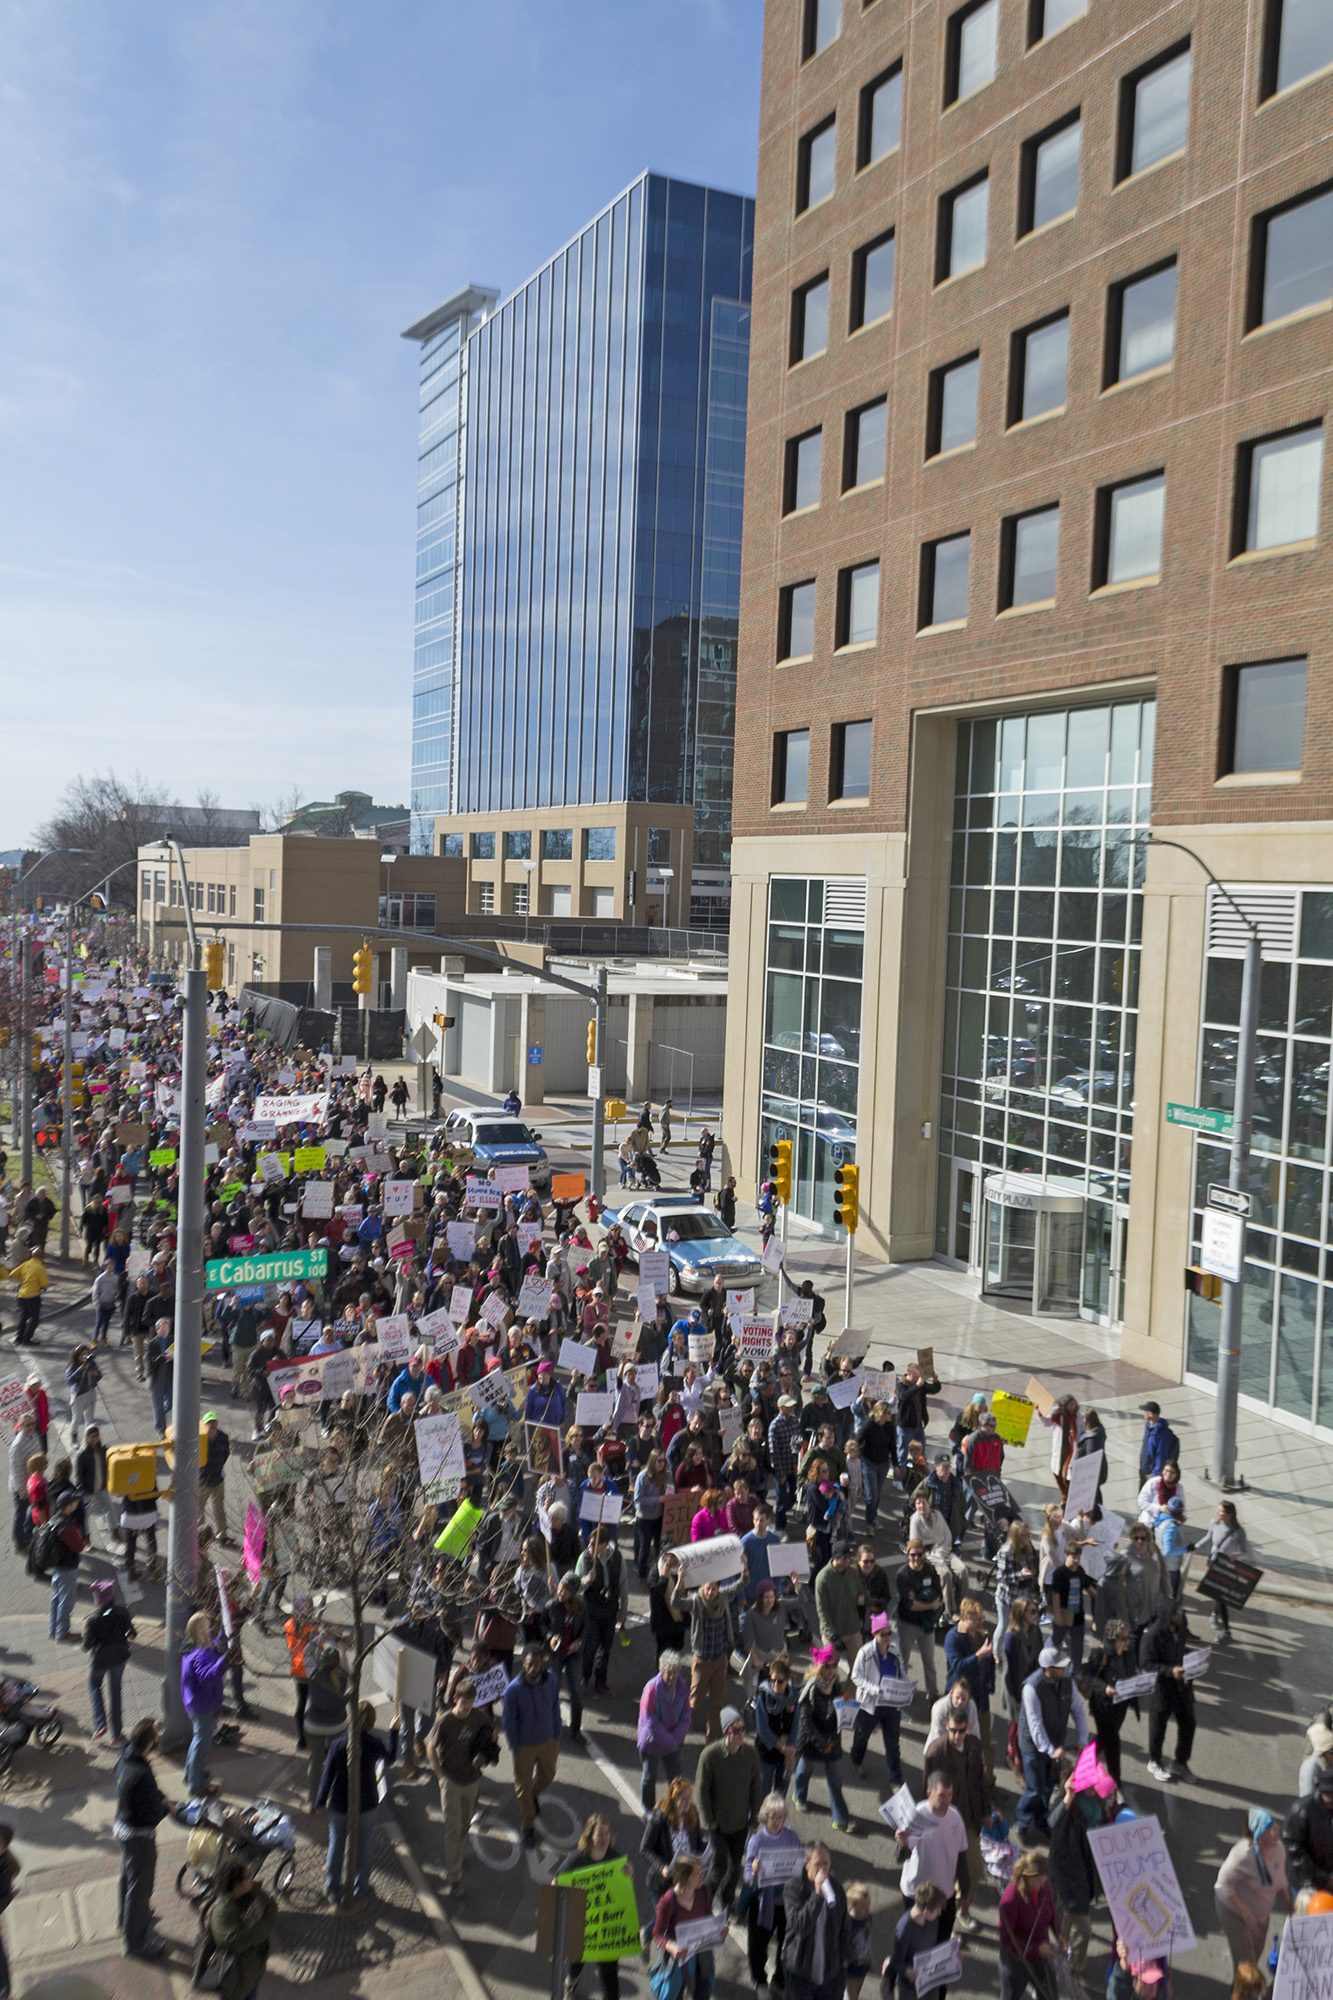 Protesters chanted as they marched down South Wilmington Street, making their way from the Duke Energy Center for the Performing Arts to the State Capitol in Raleigh. (Photo courtesy of Lauren Groffsky)